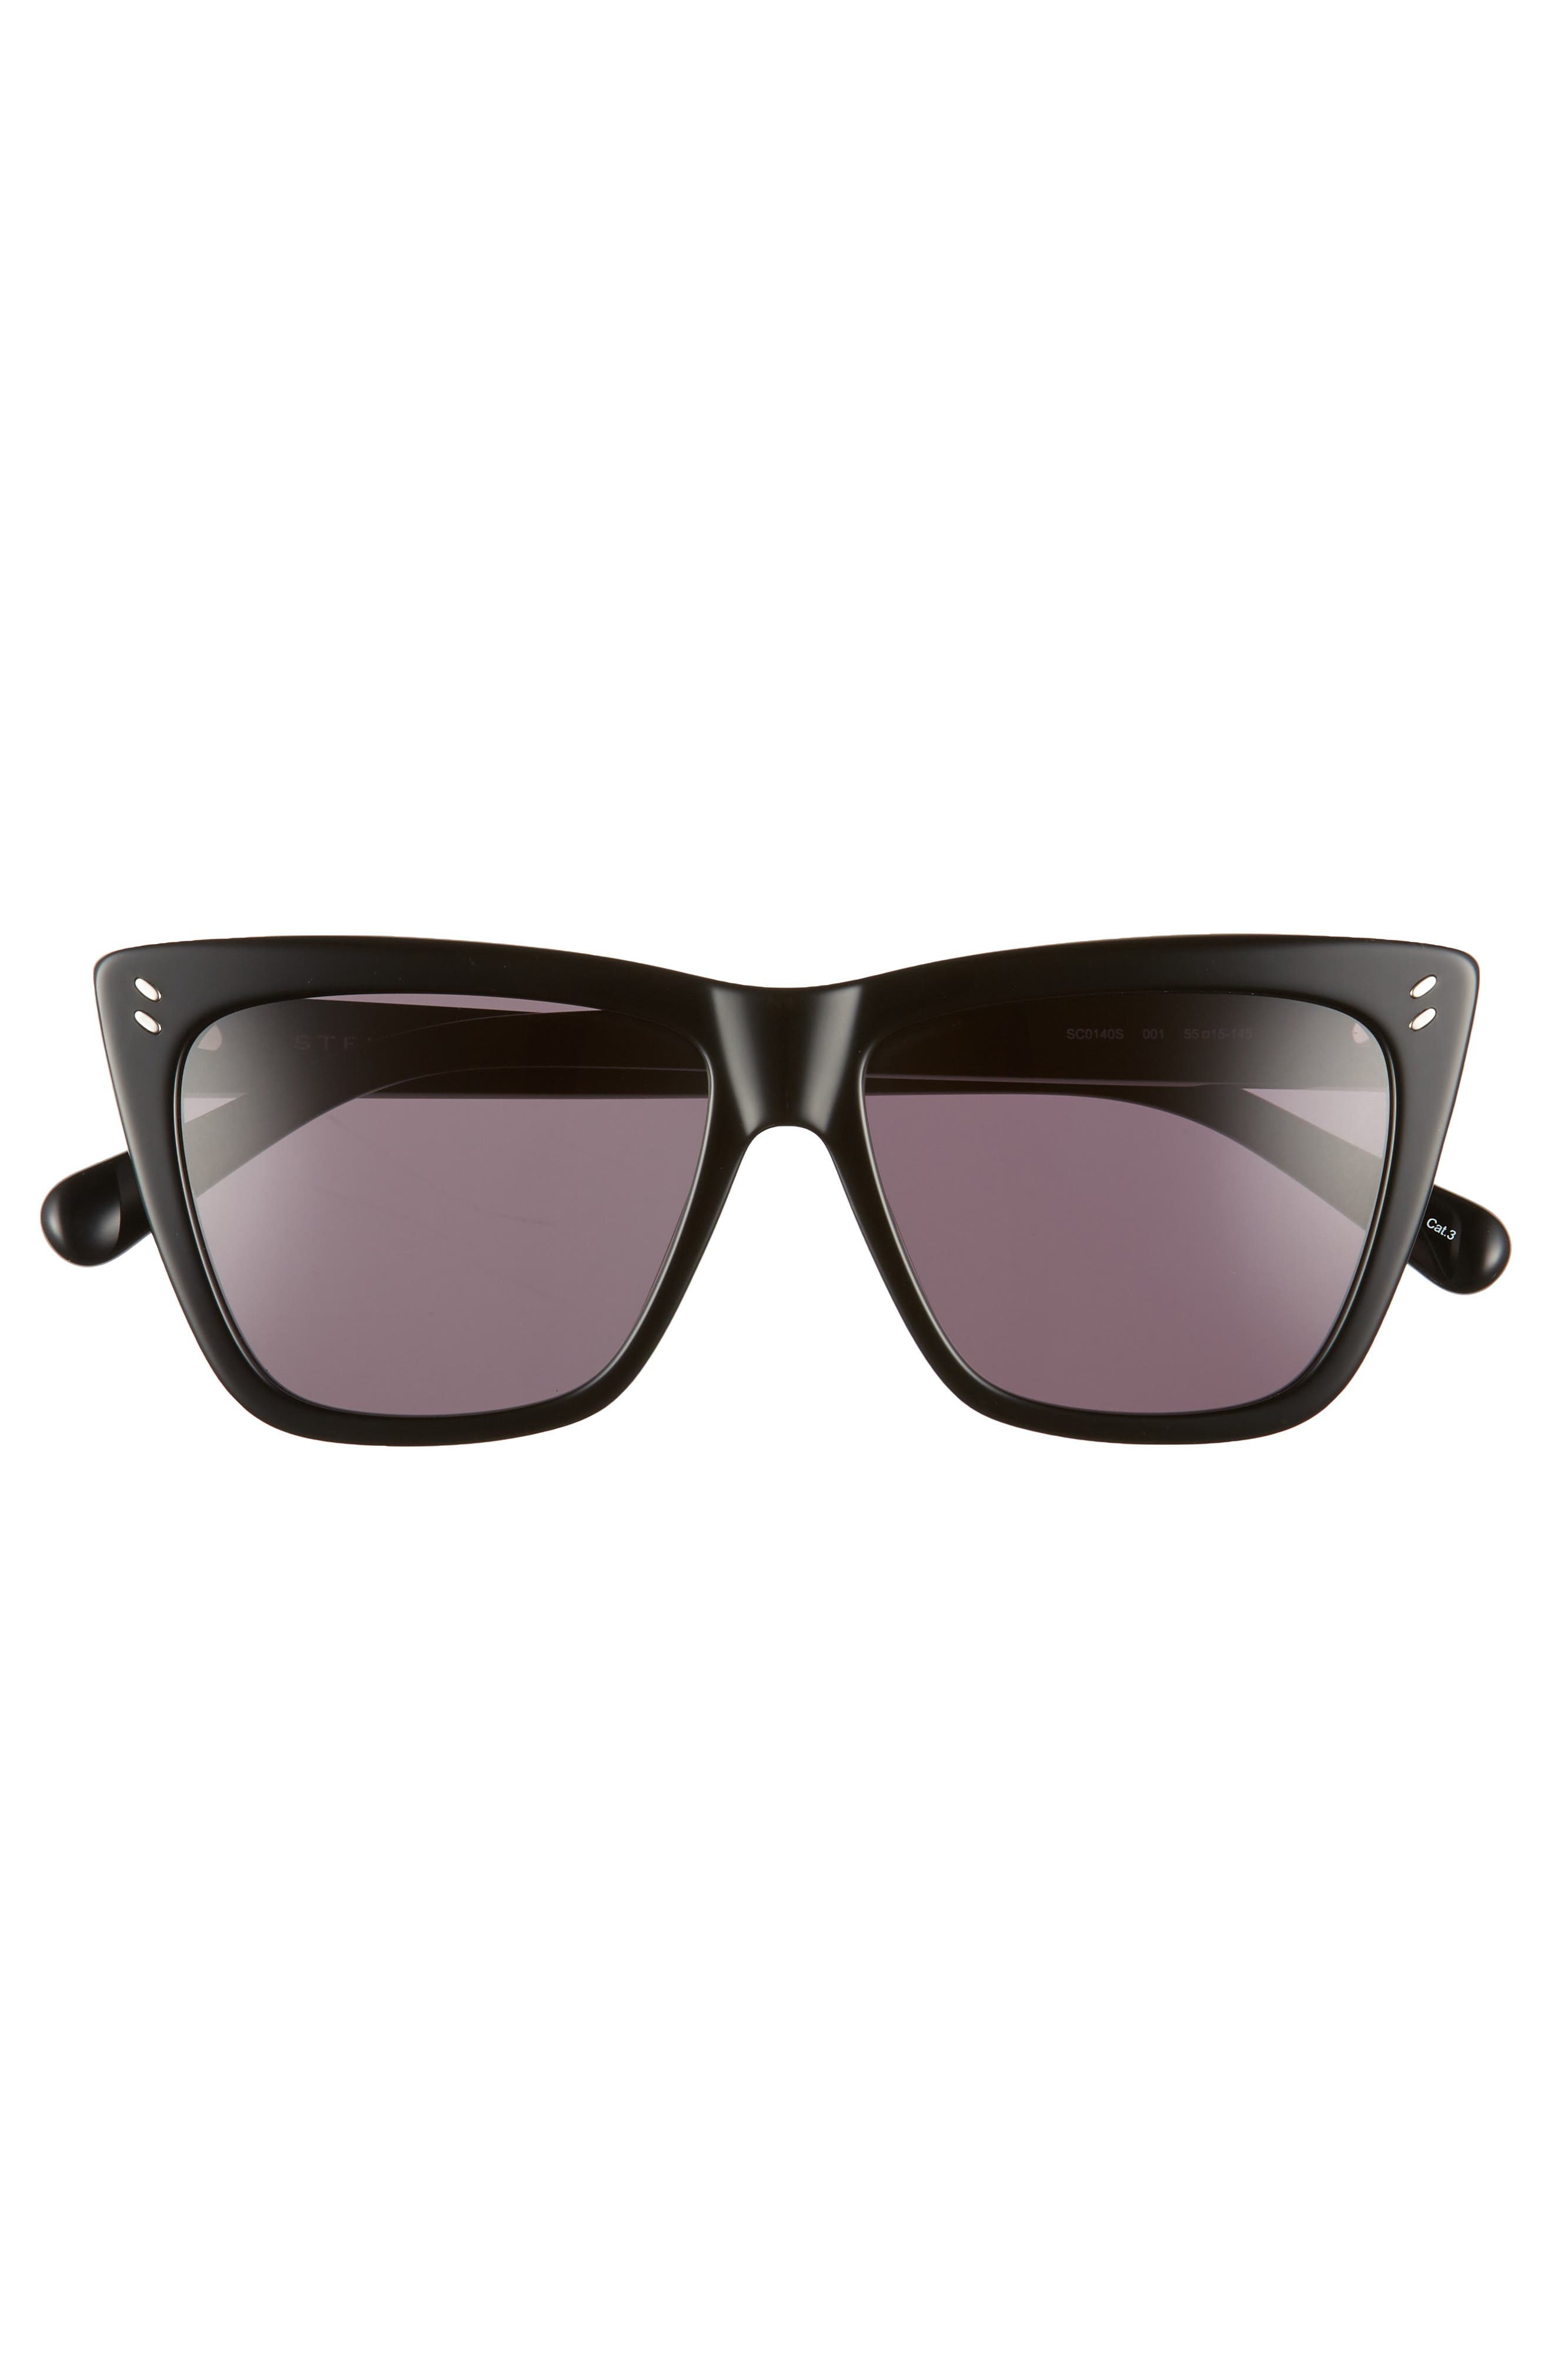 55mm Polarized Sunglasses,                             Alternate thumbnail 5, color,